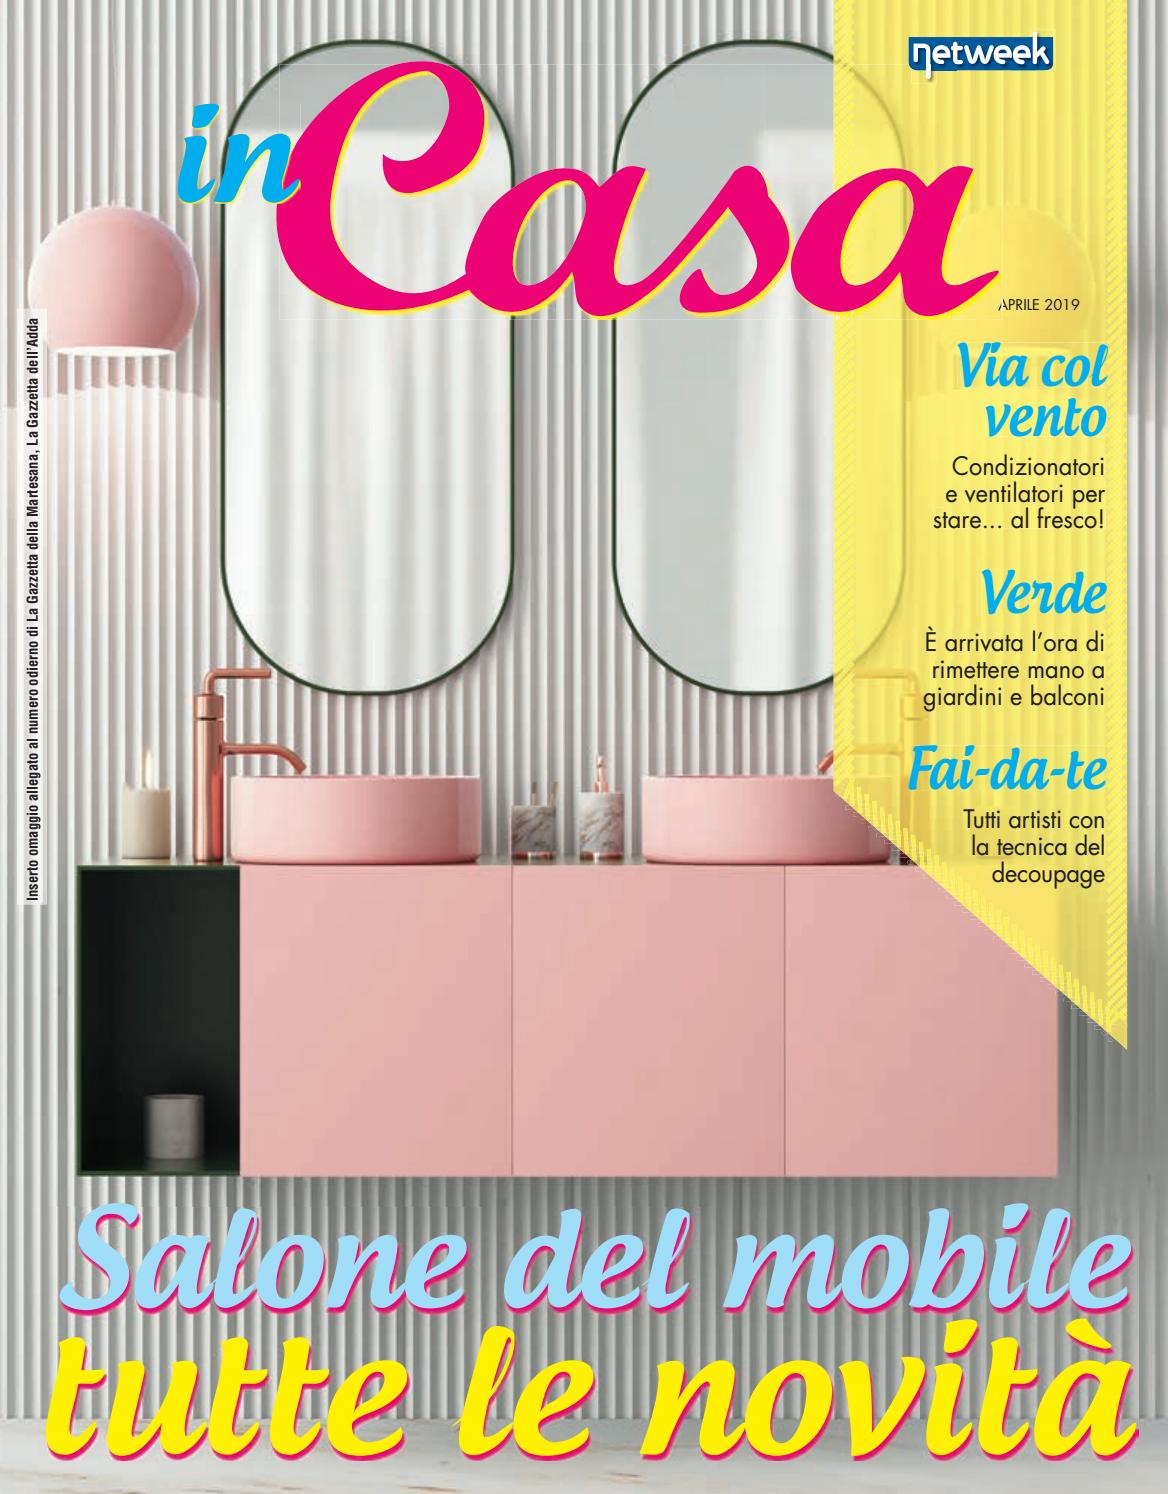 daed08b017d1b1 inCasa Martesana n.Aprile 2019 by Netweek - issuu